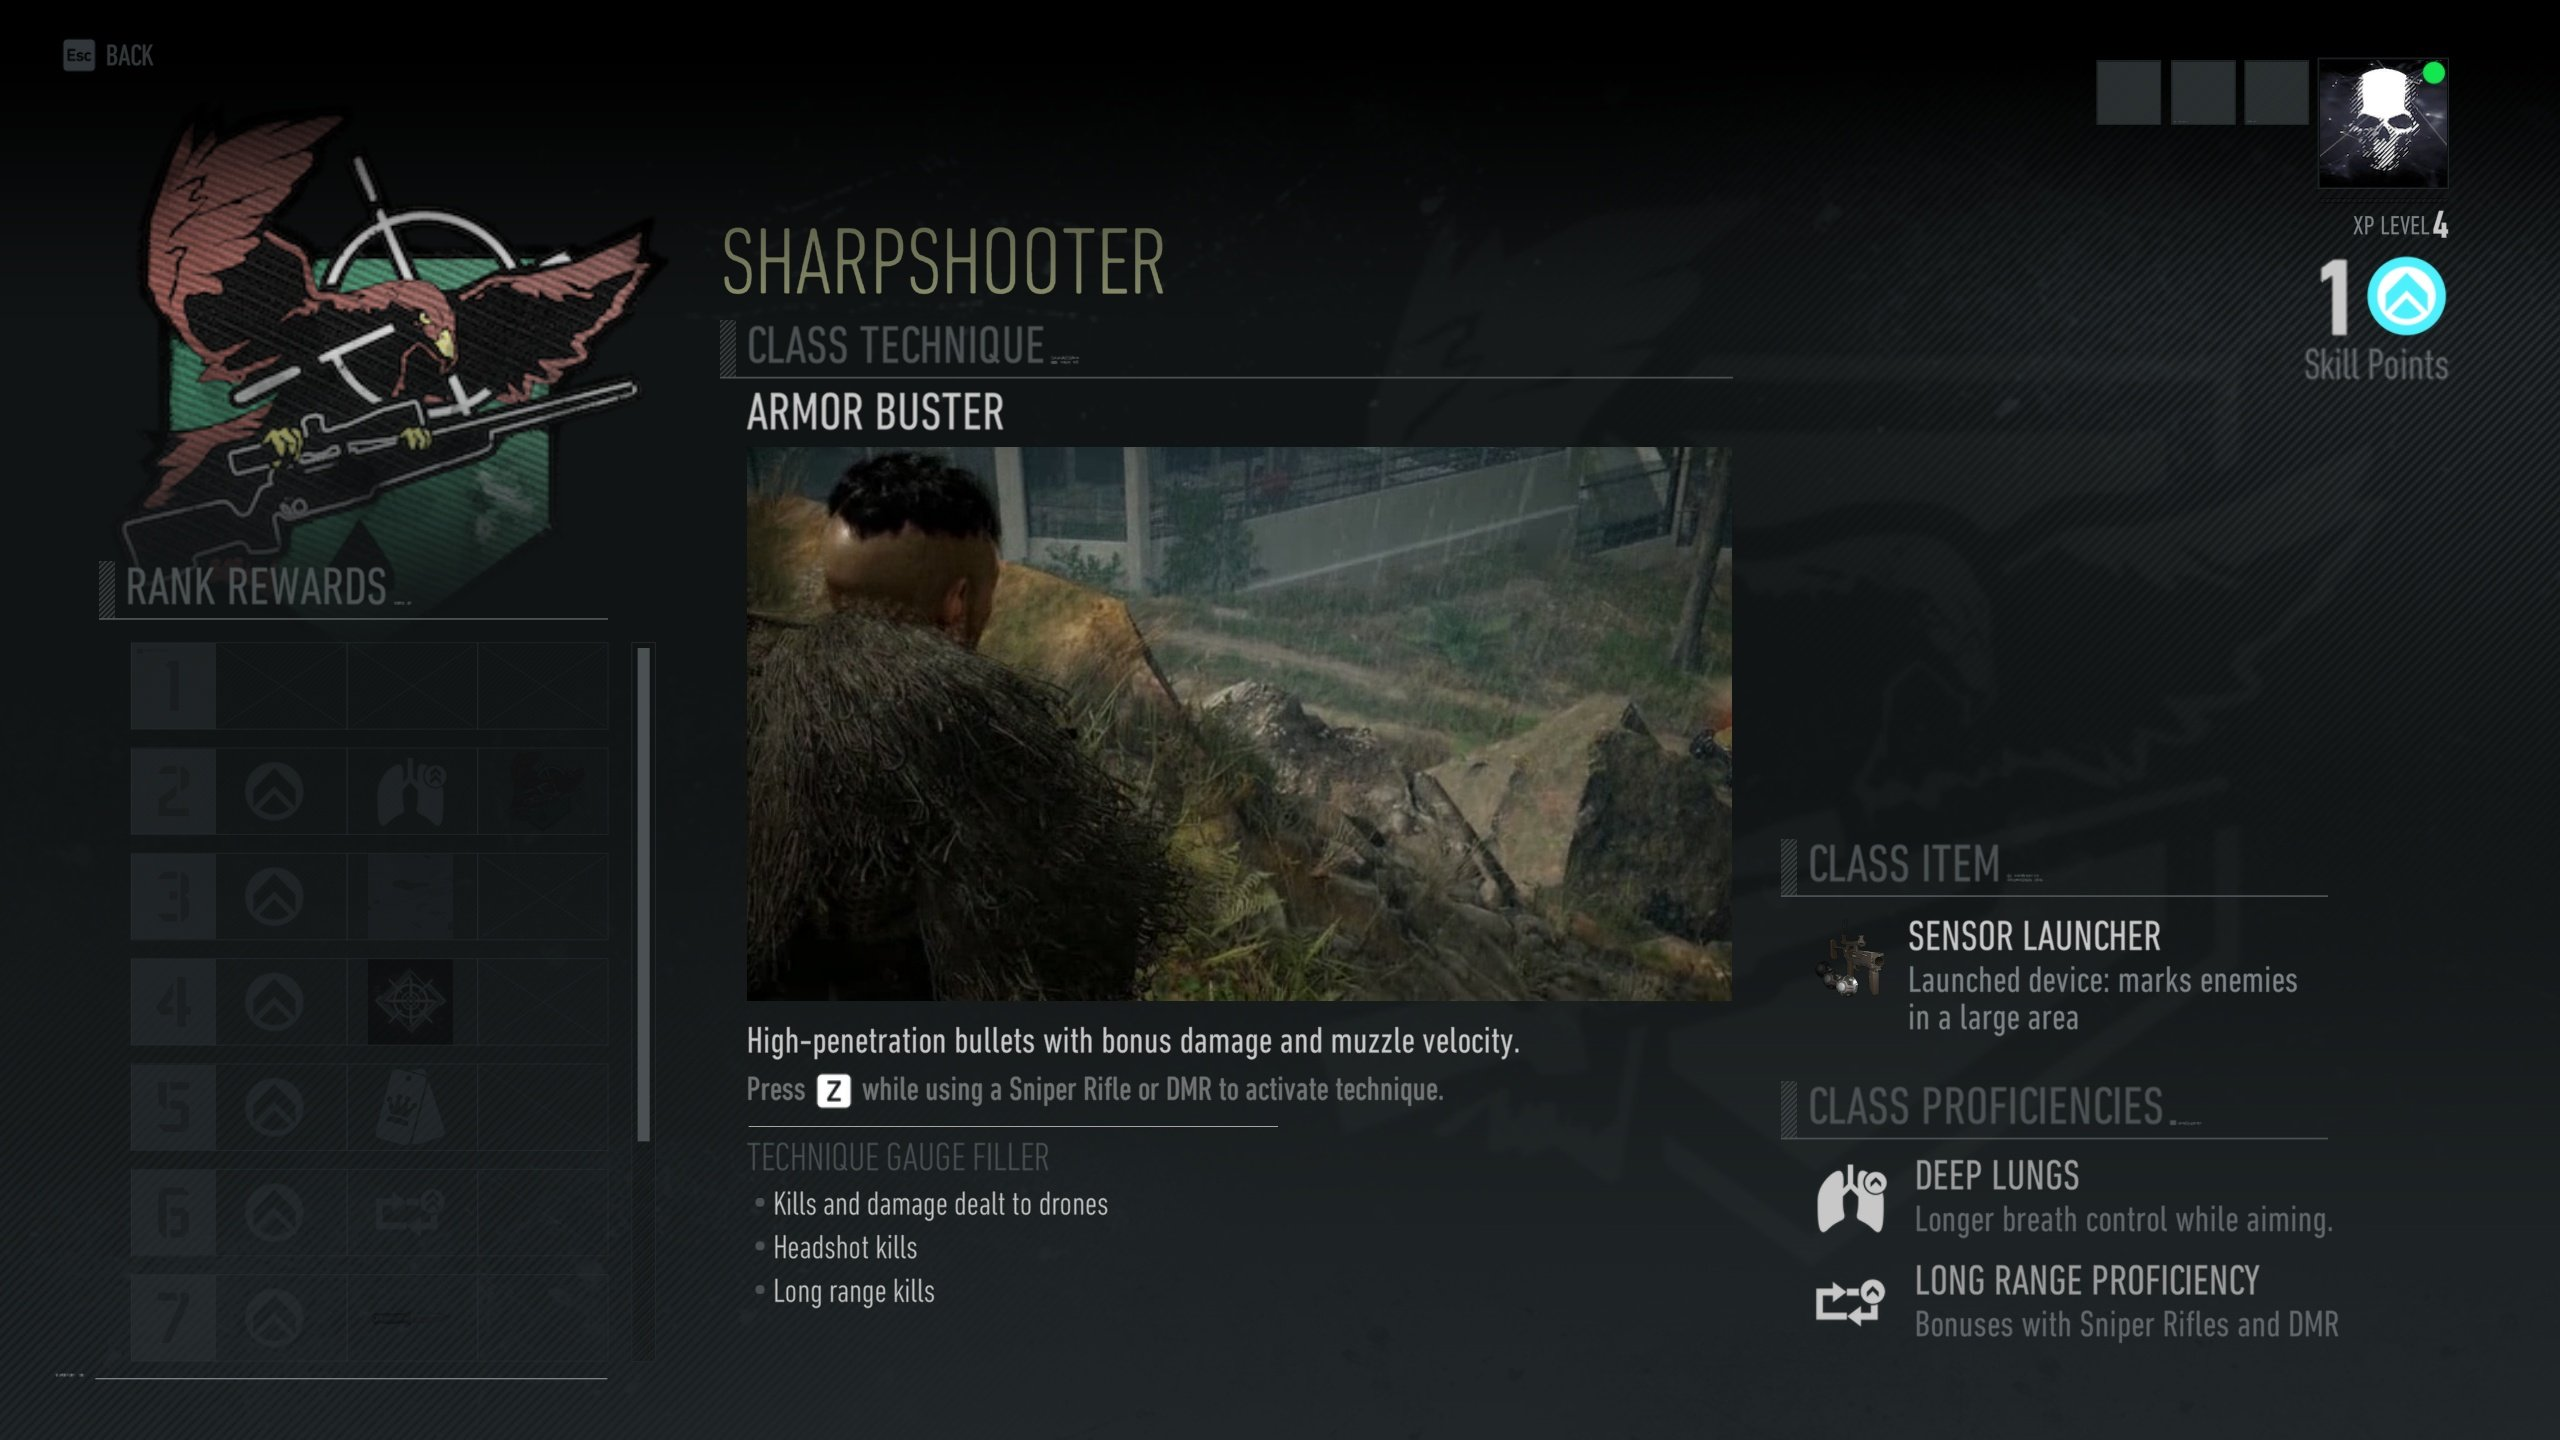 Ghost Recon Breakpoint - Sharpshooter class